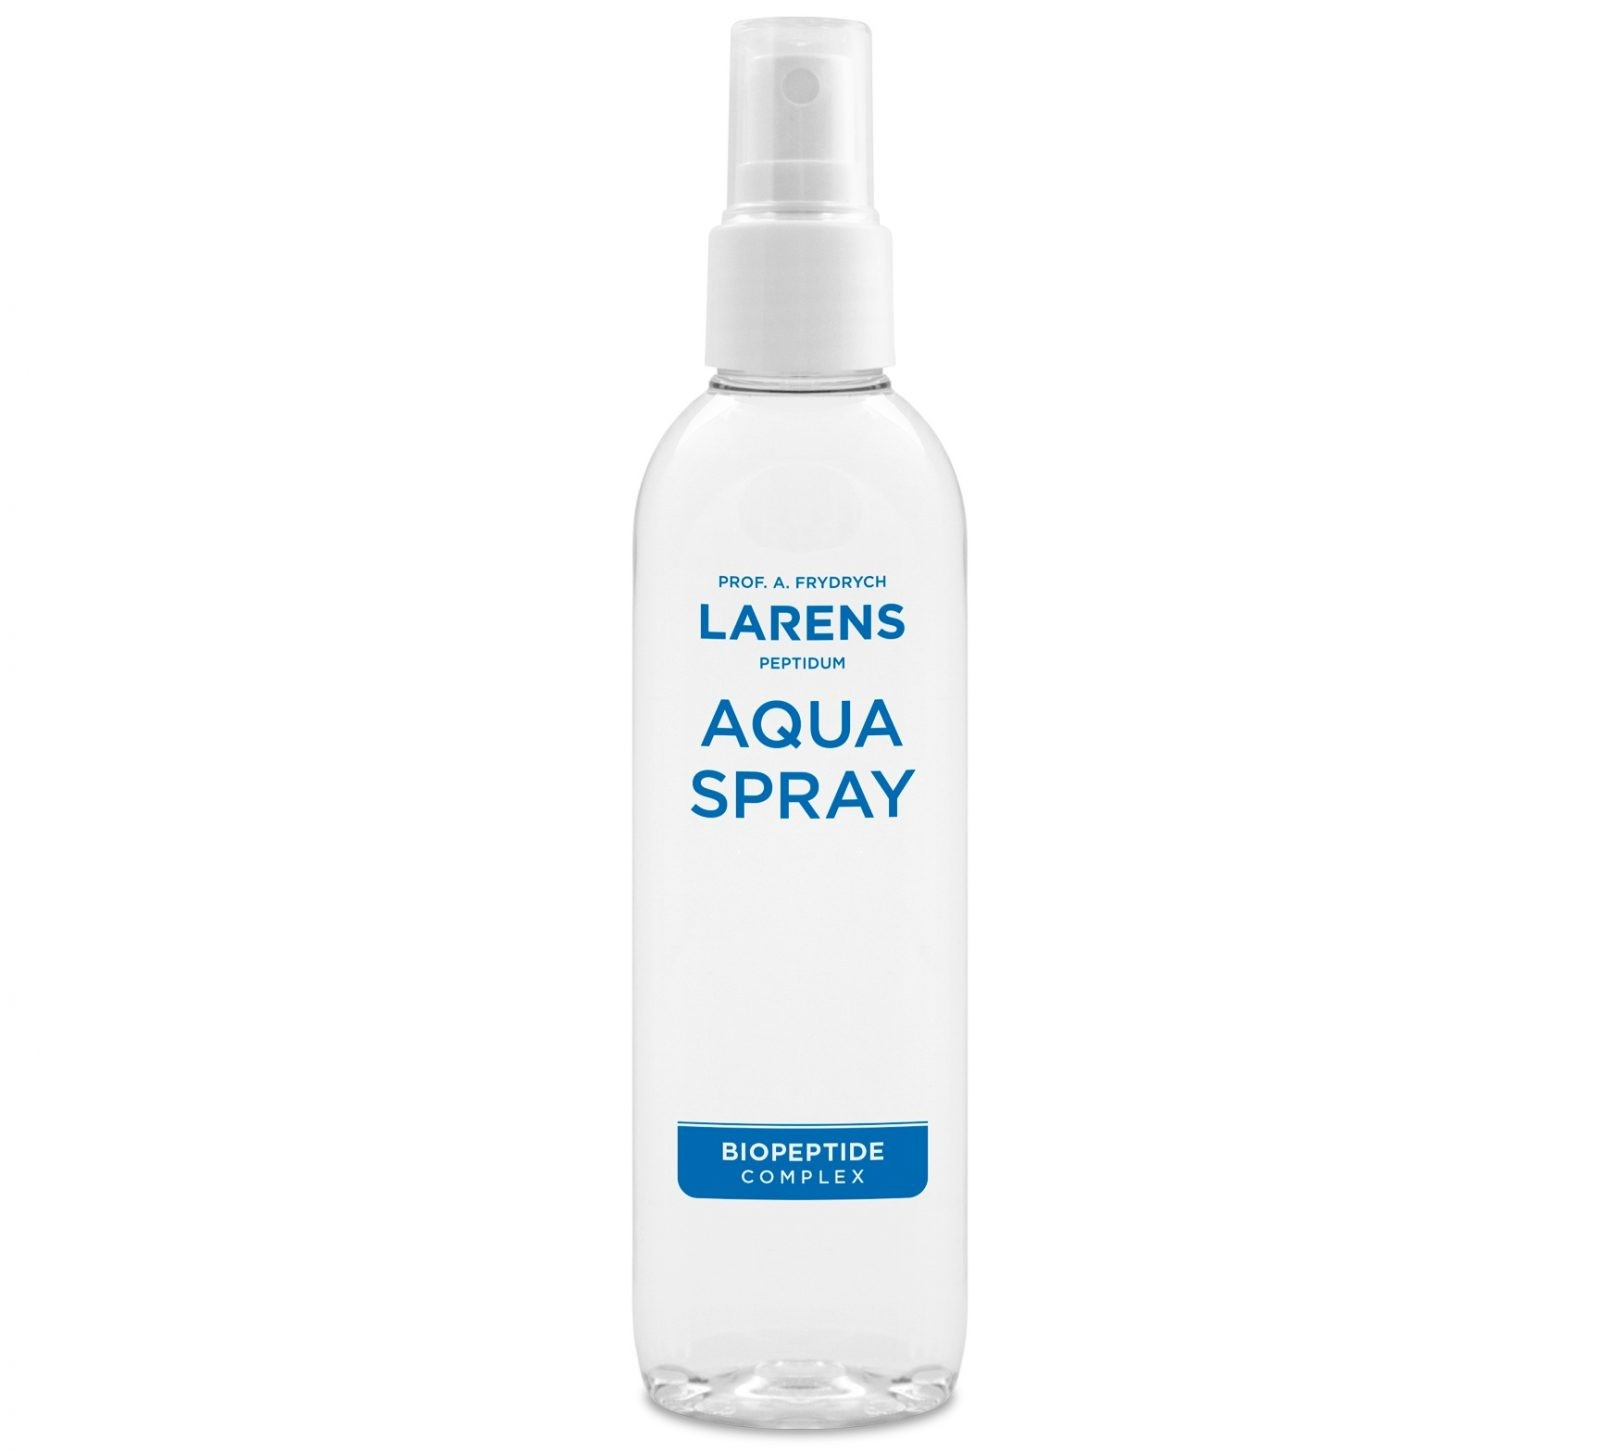 Aqua Spray Larens